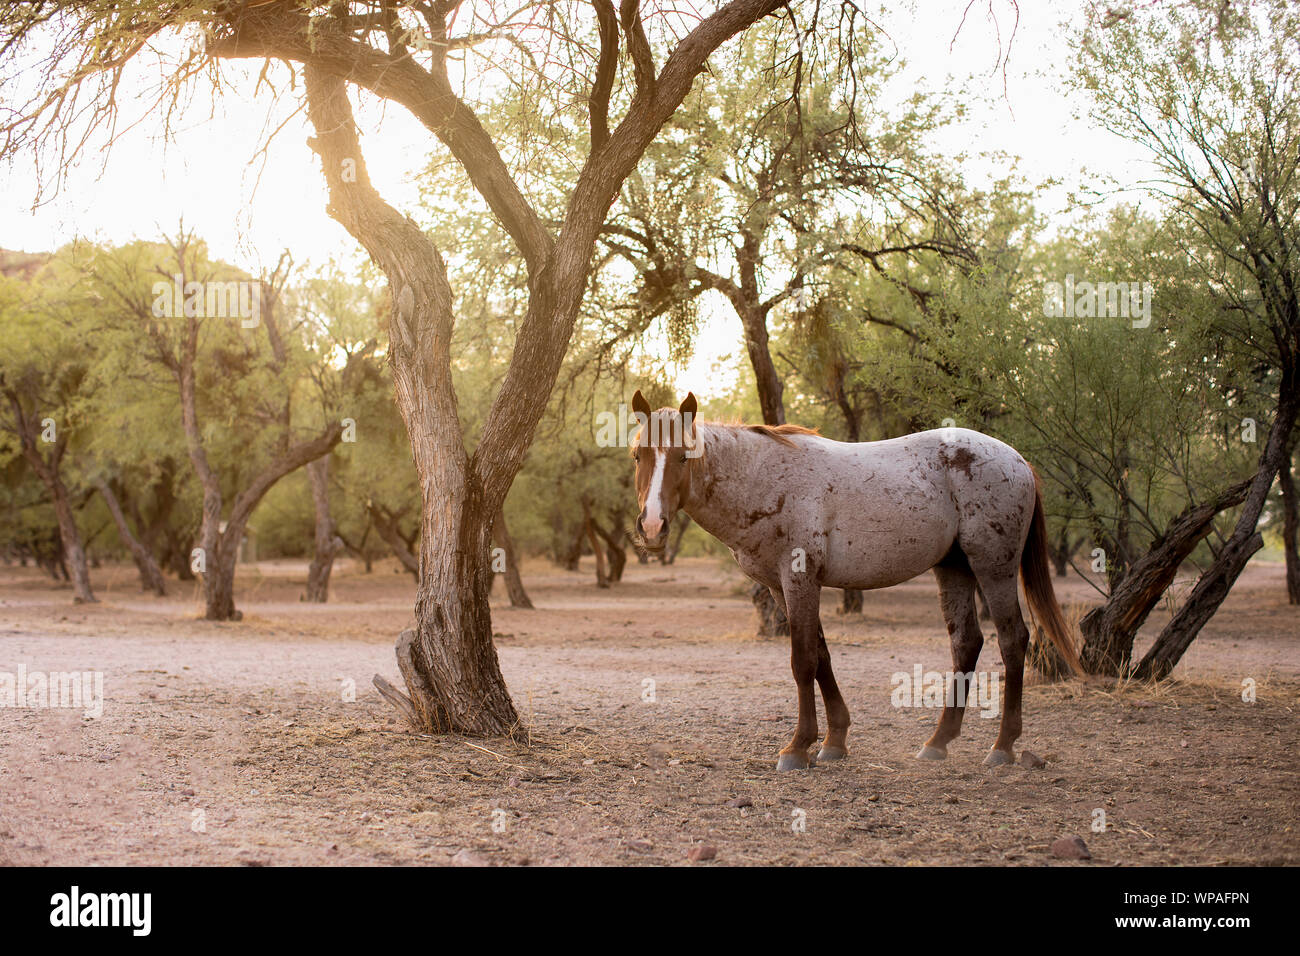 Wild Horse in the desert forest Stock Photo